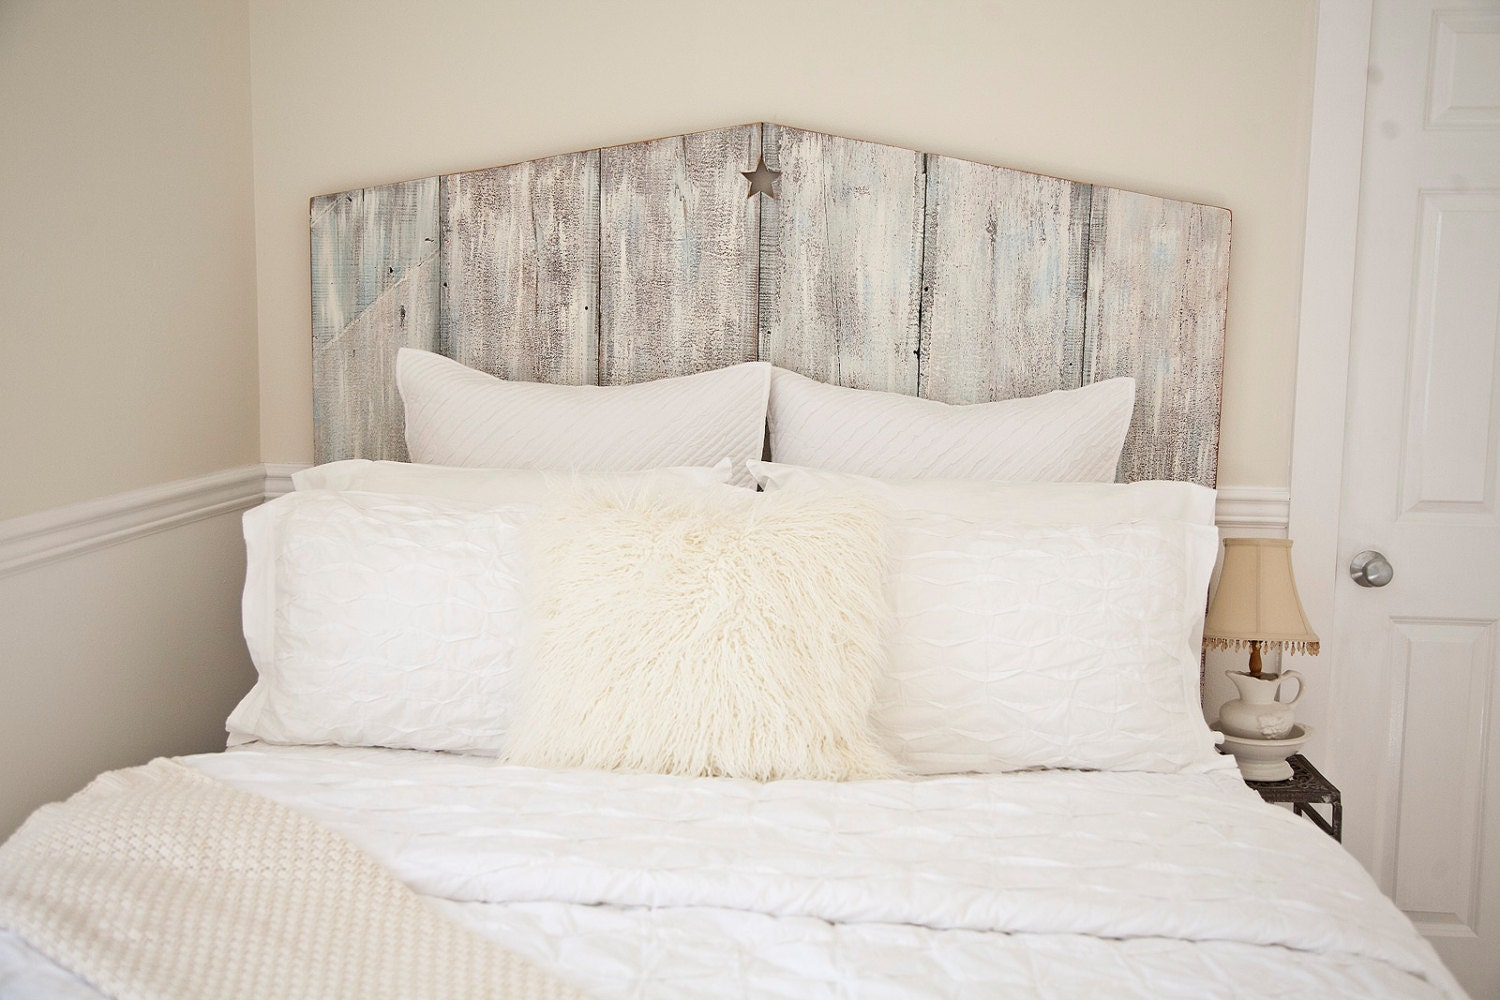 queen tricia reclaimed wood beach cottage headboard by. Black Bedroom Furniture Sets. Home Design Ideas